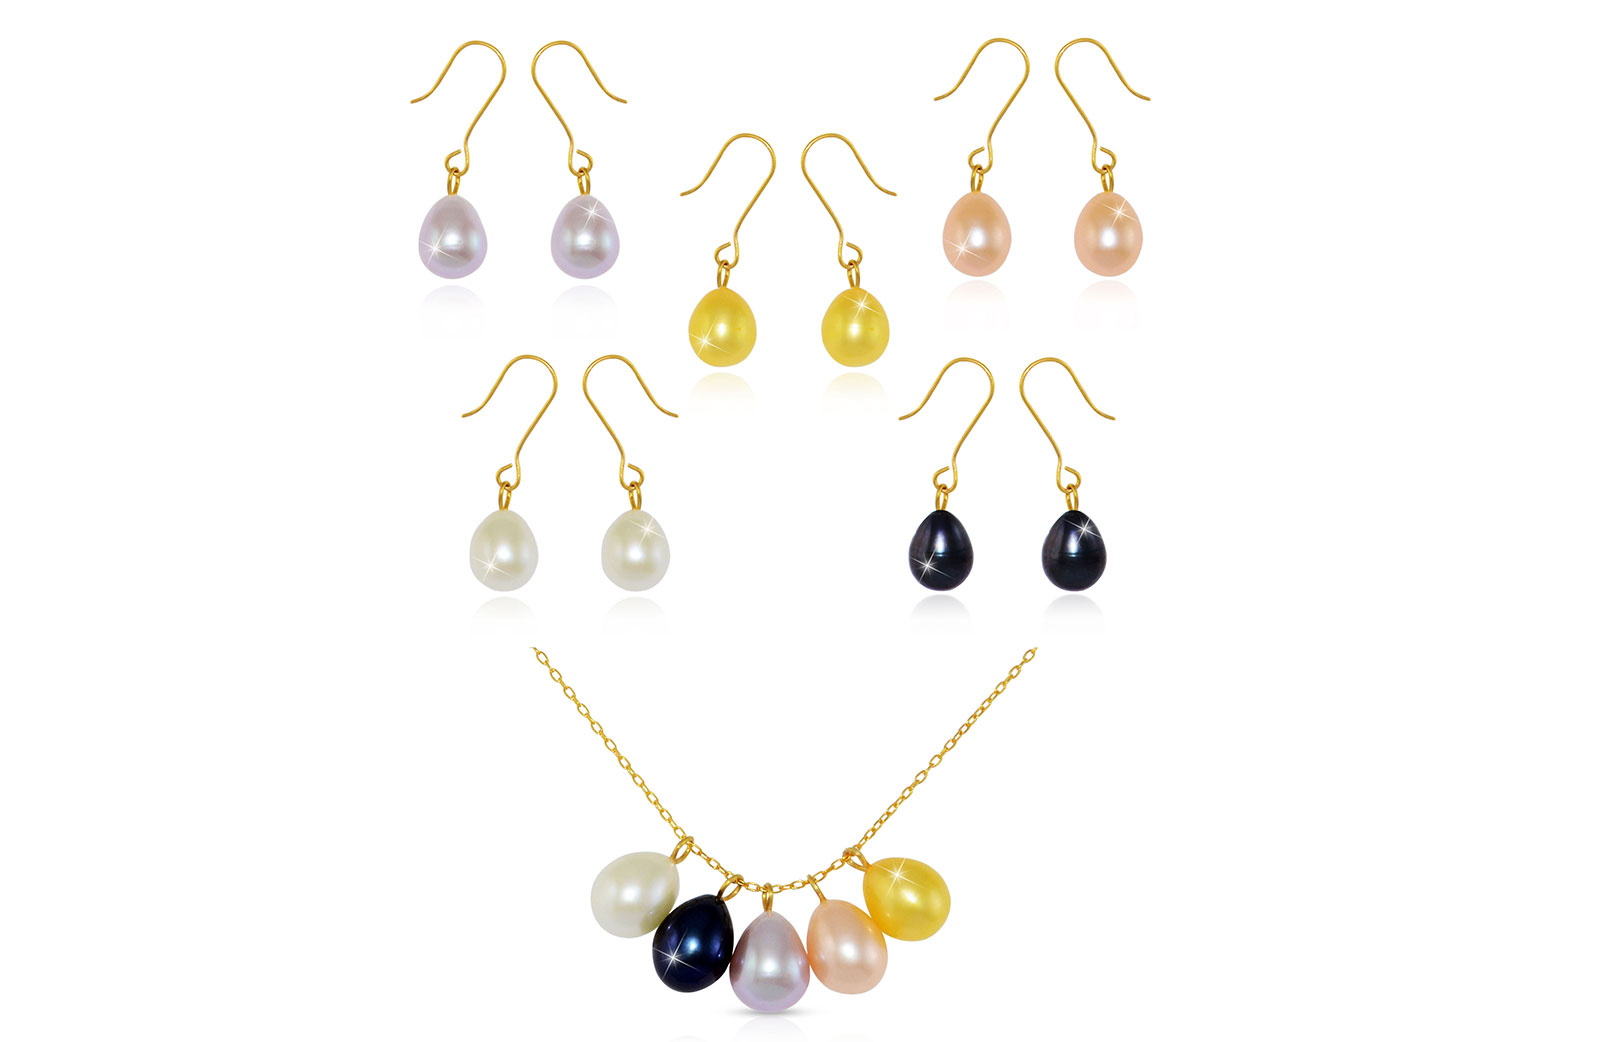 Vera Perla 5 in 1 10K Gold Genuine Pearls 5 Pendants and Earrings and 1 Chain